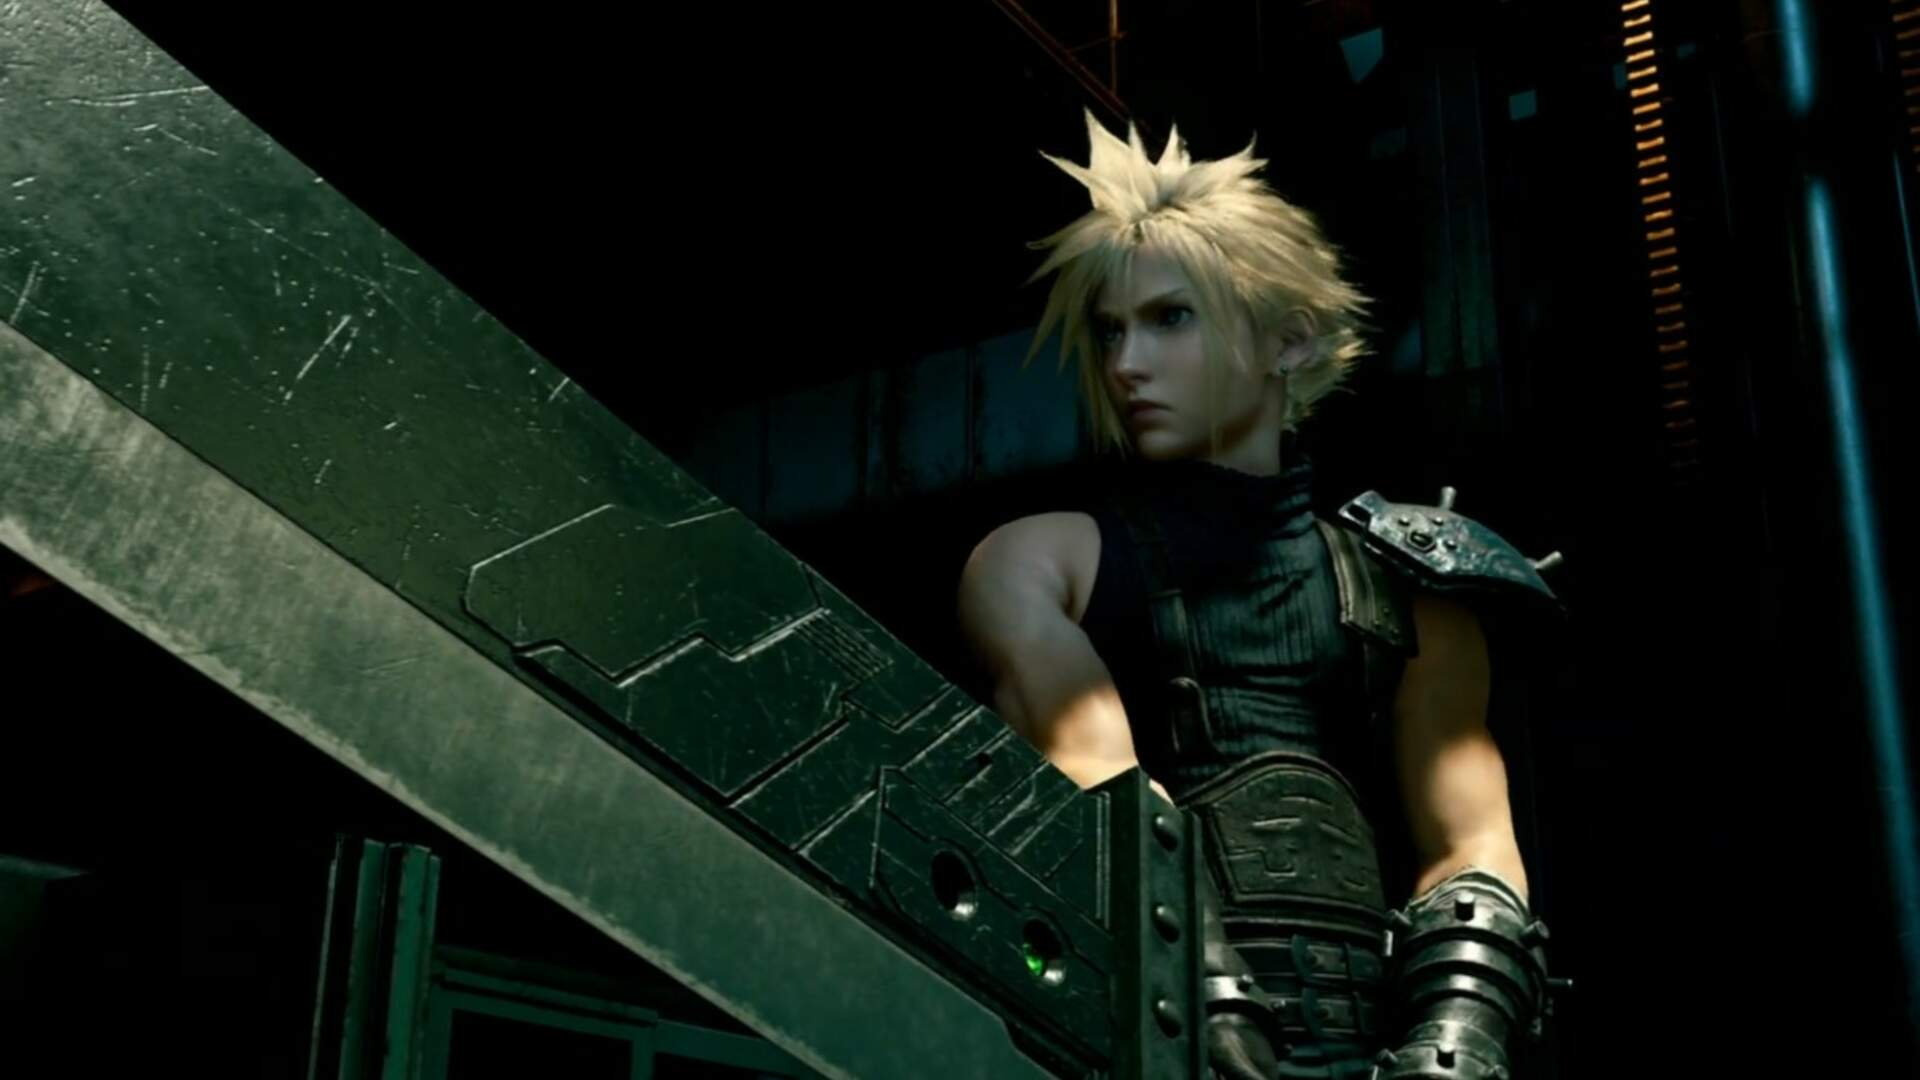 Final Fantasy 7 Remake's Full Combat System Revealed as a Hybrid of Real-Time and ATB Mechanics